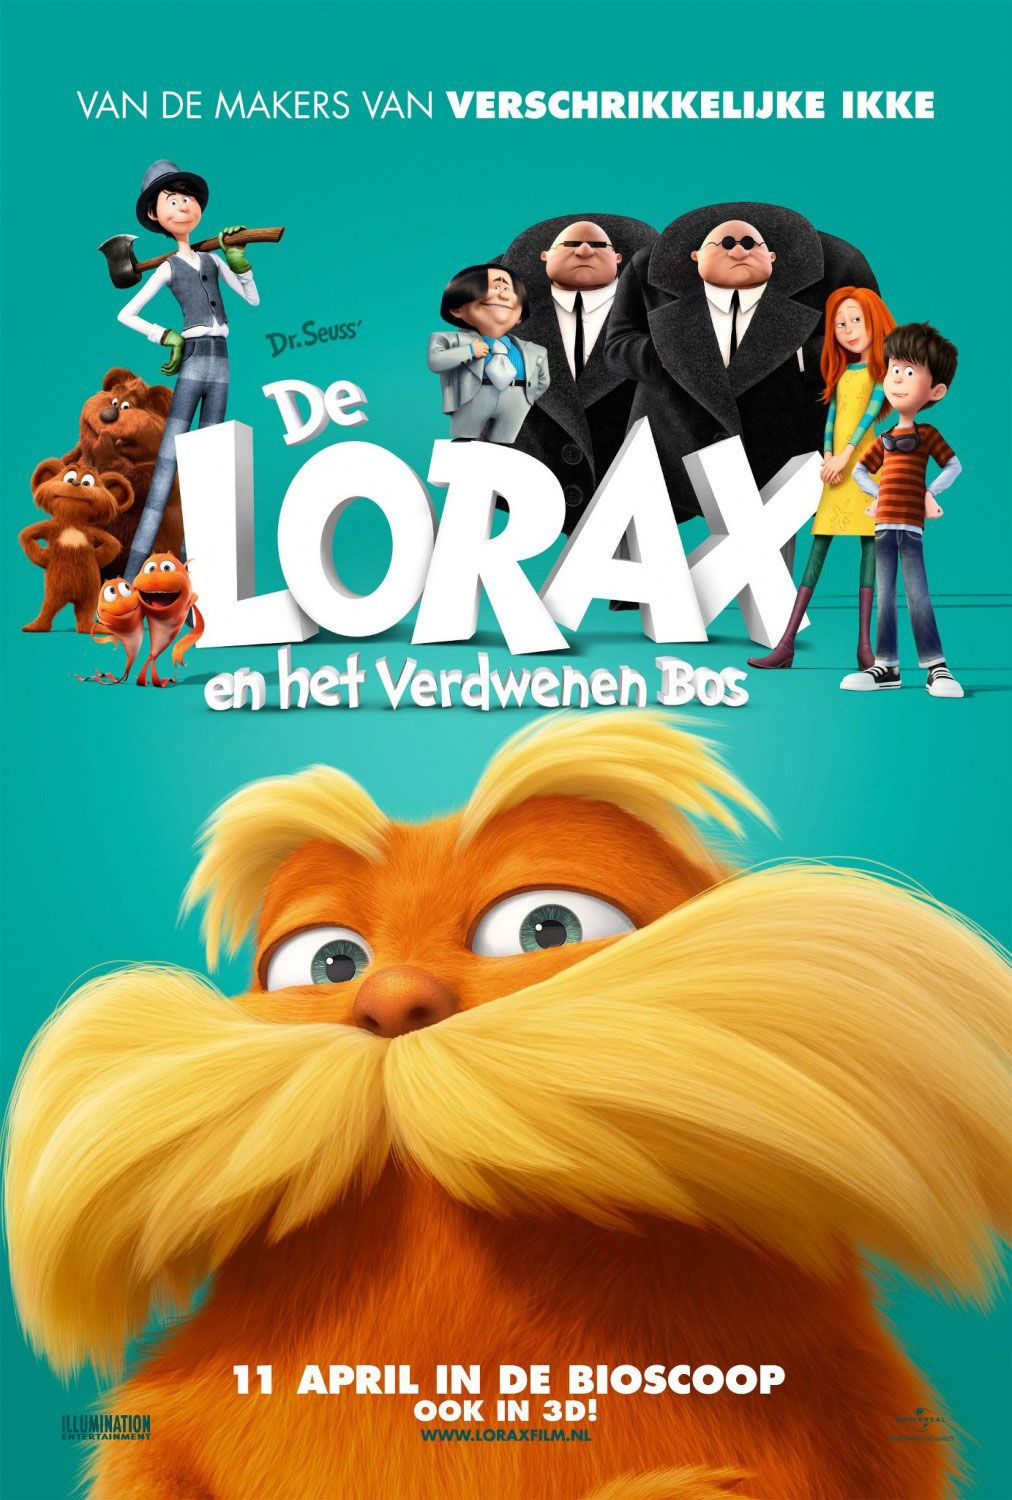 The Lorax , starring Zac Efron, Taylor Swift, Danny DeVito, Ed Helms. A 12-year-old boy searches for the one thing that will enable him to win the affection of the girl of his dreams. To find it he must discover the story of the Lorax, the grumpy yet charming creature who fights to protect his world. #Animation #Comedy #Family #Fantasy